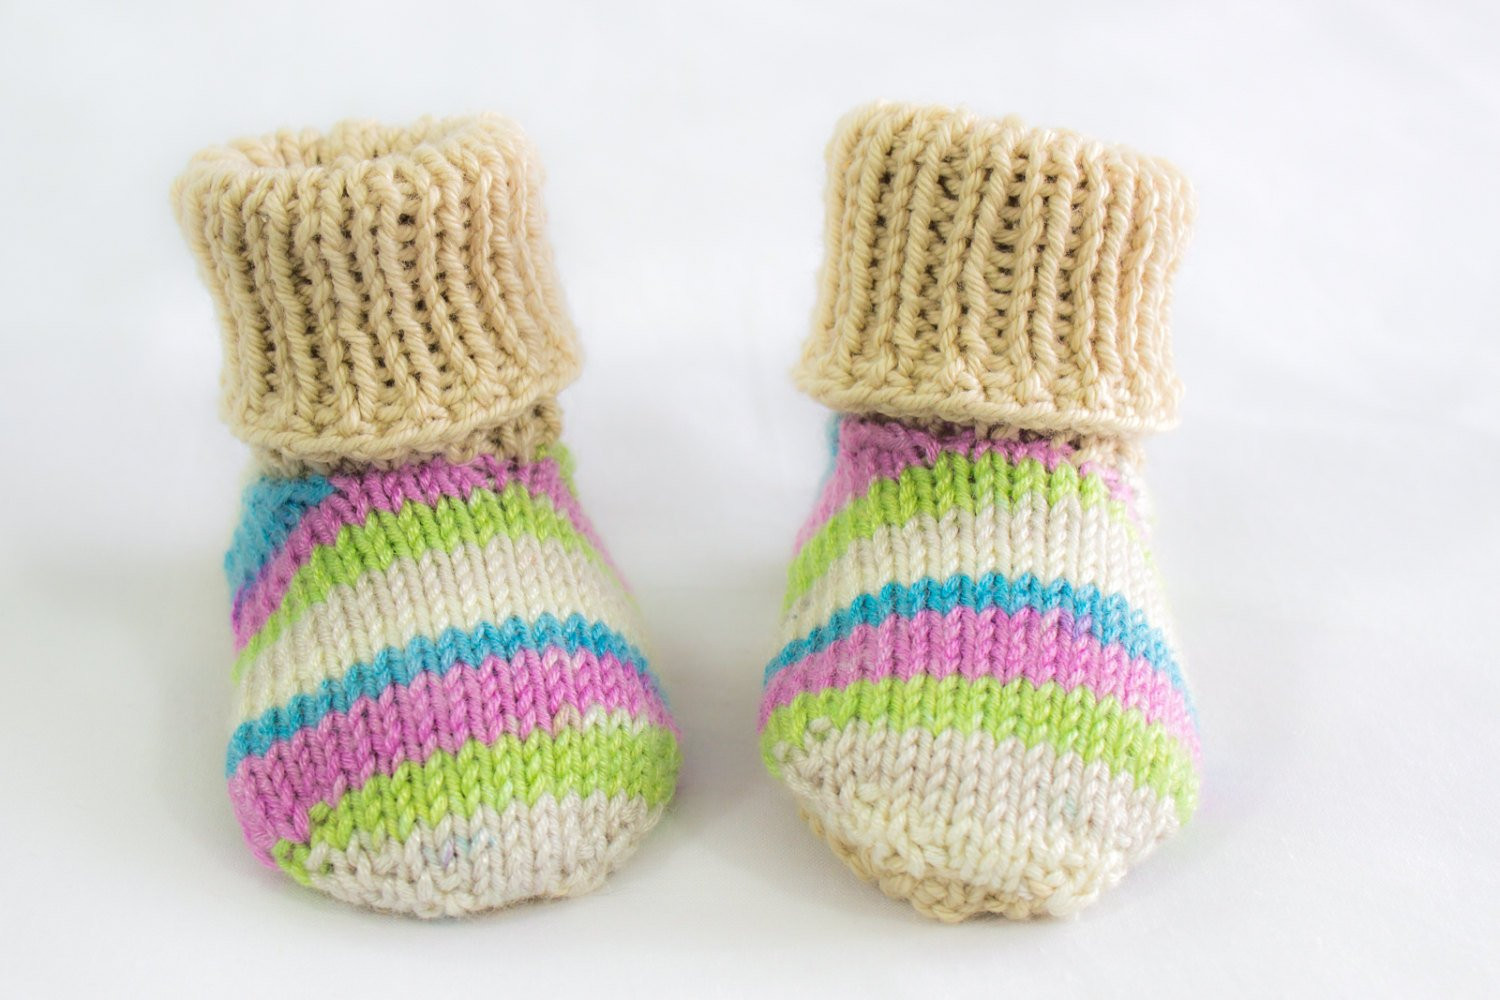 Knitted Baby Shoes Luxury Knitting Patterntoddler Baby Slippers Baby Slippers Of Attractive 40 Pics Knitted Baby Shoes